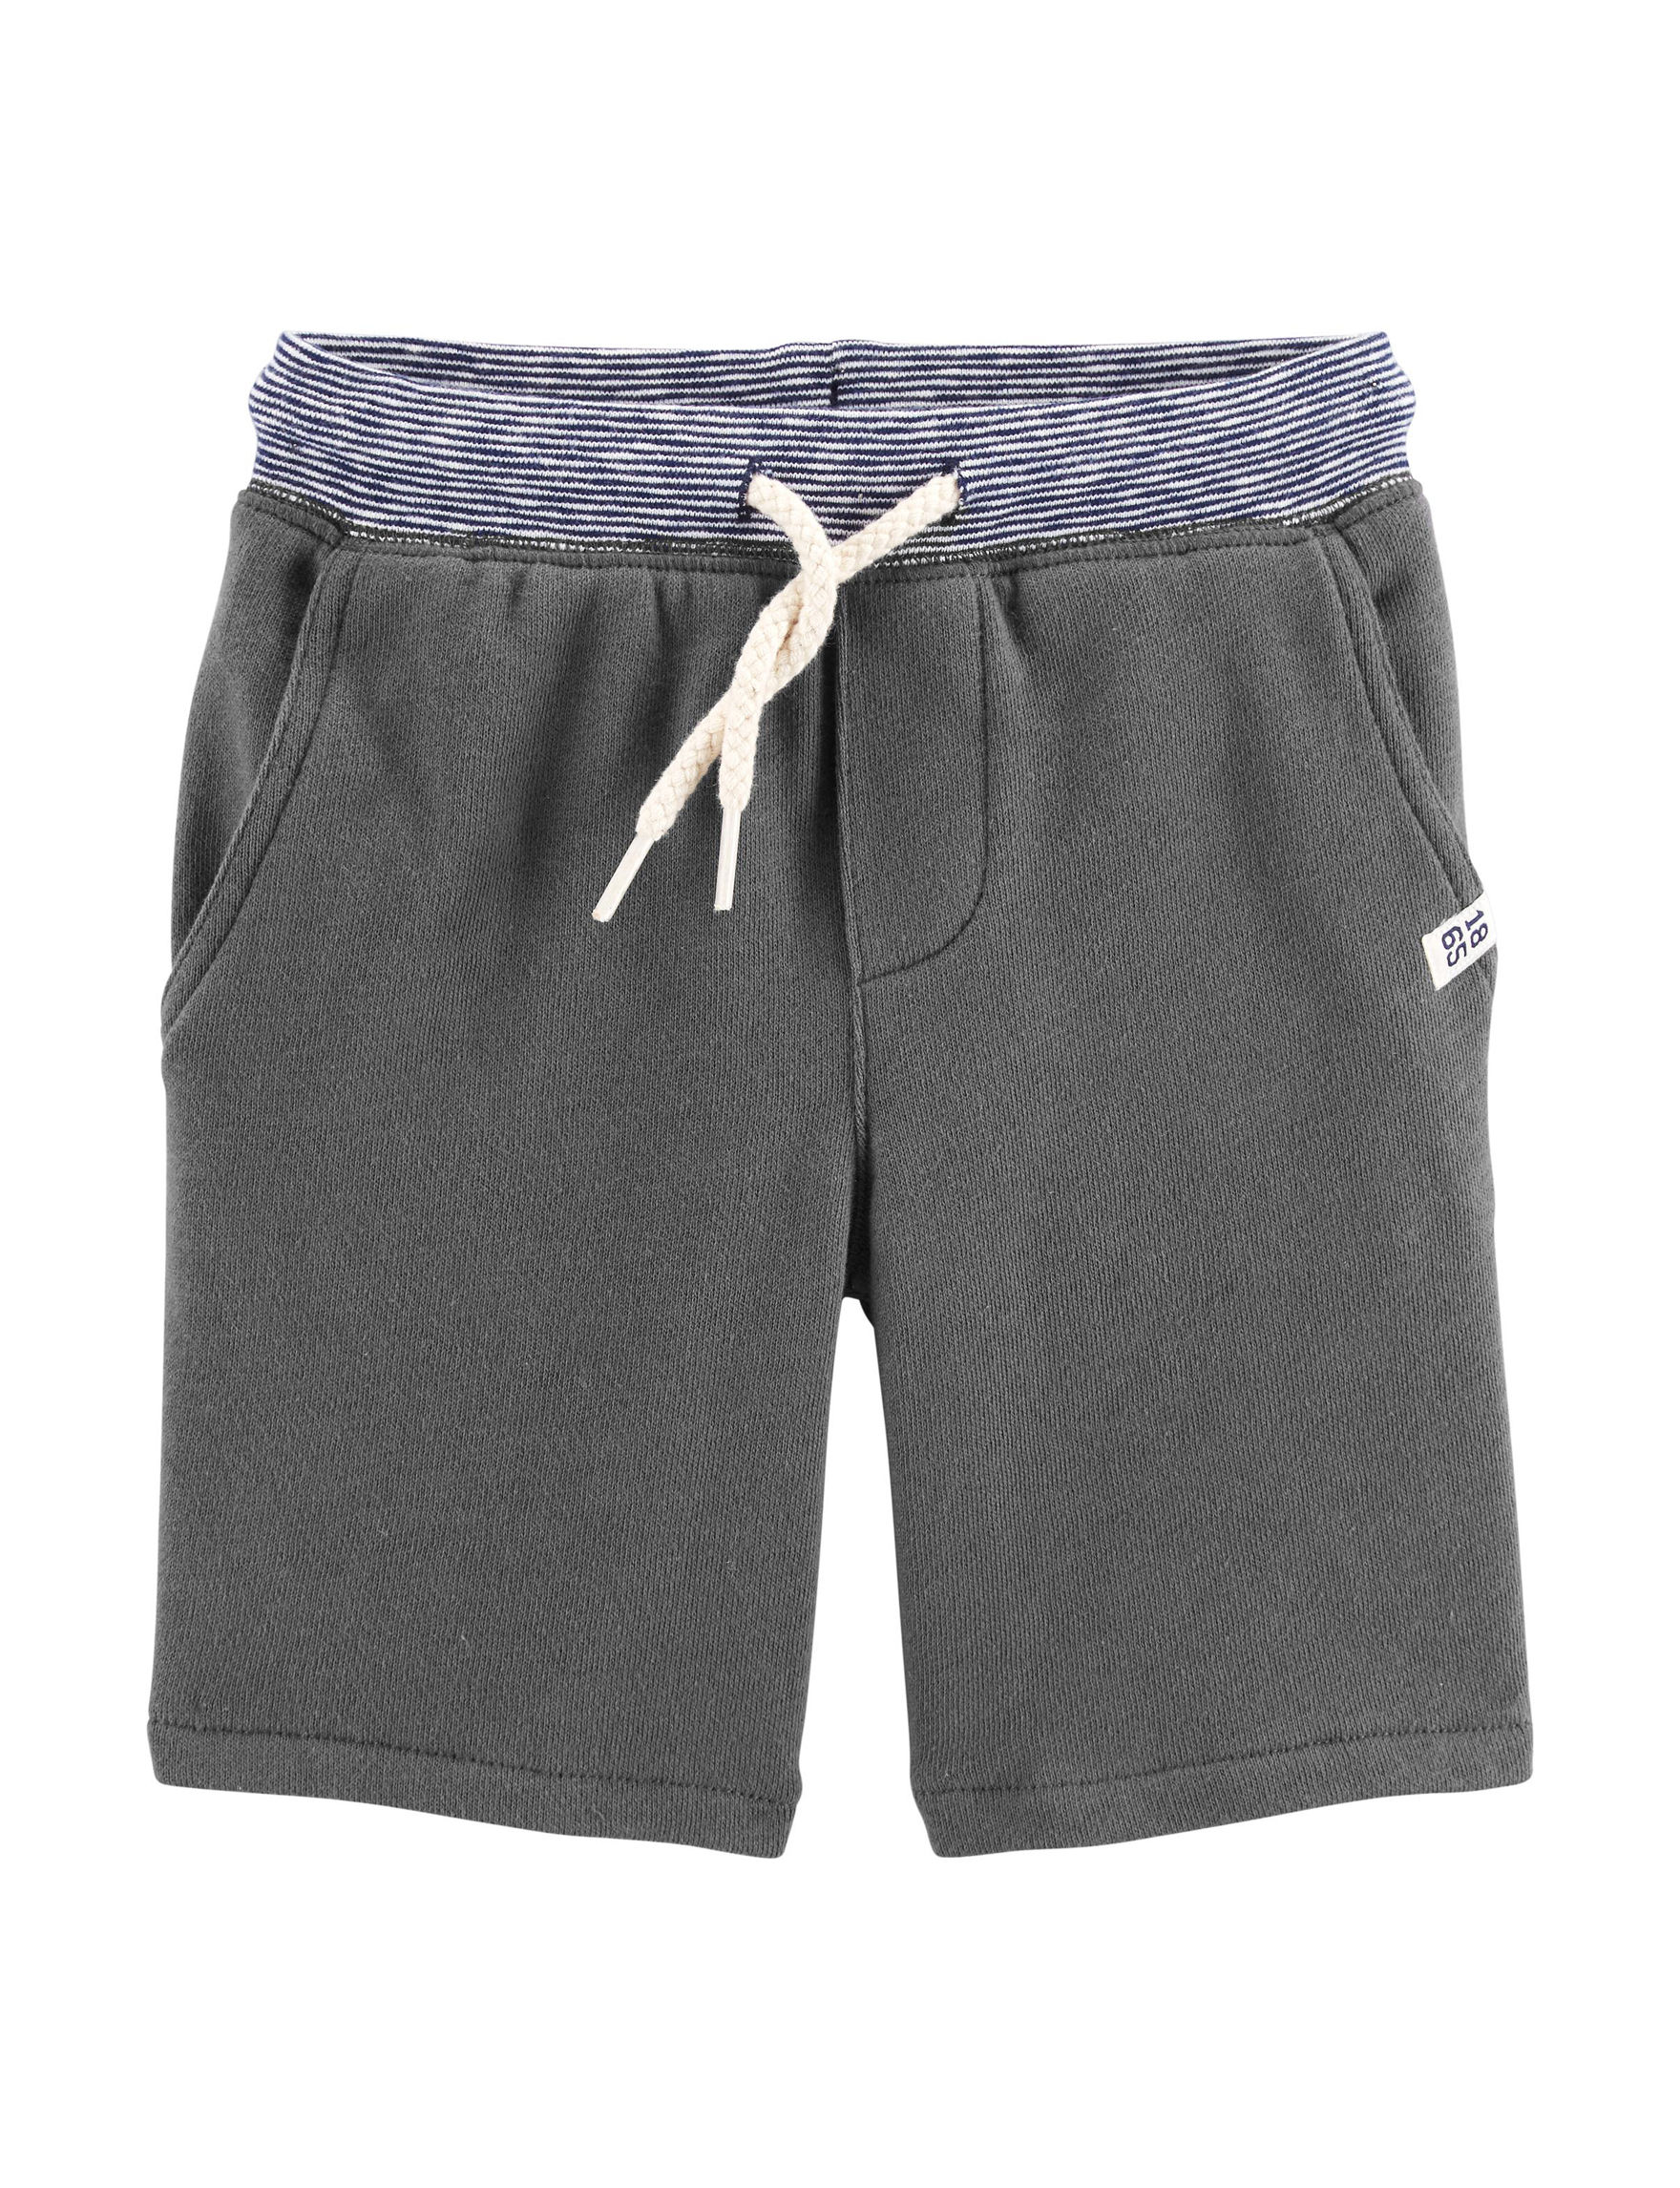 Carter's Dark Grey